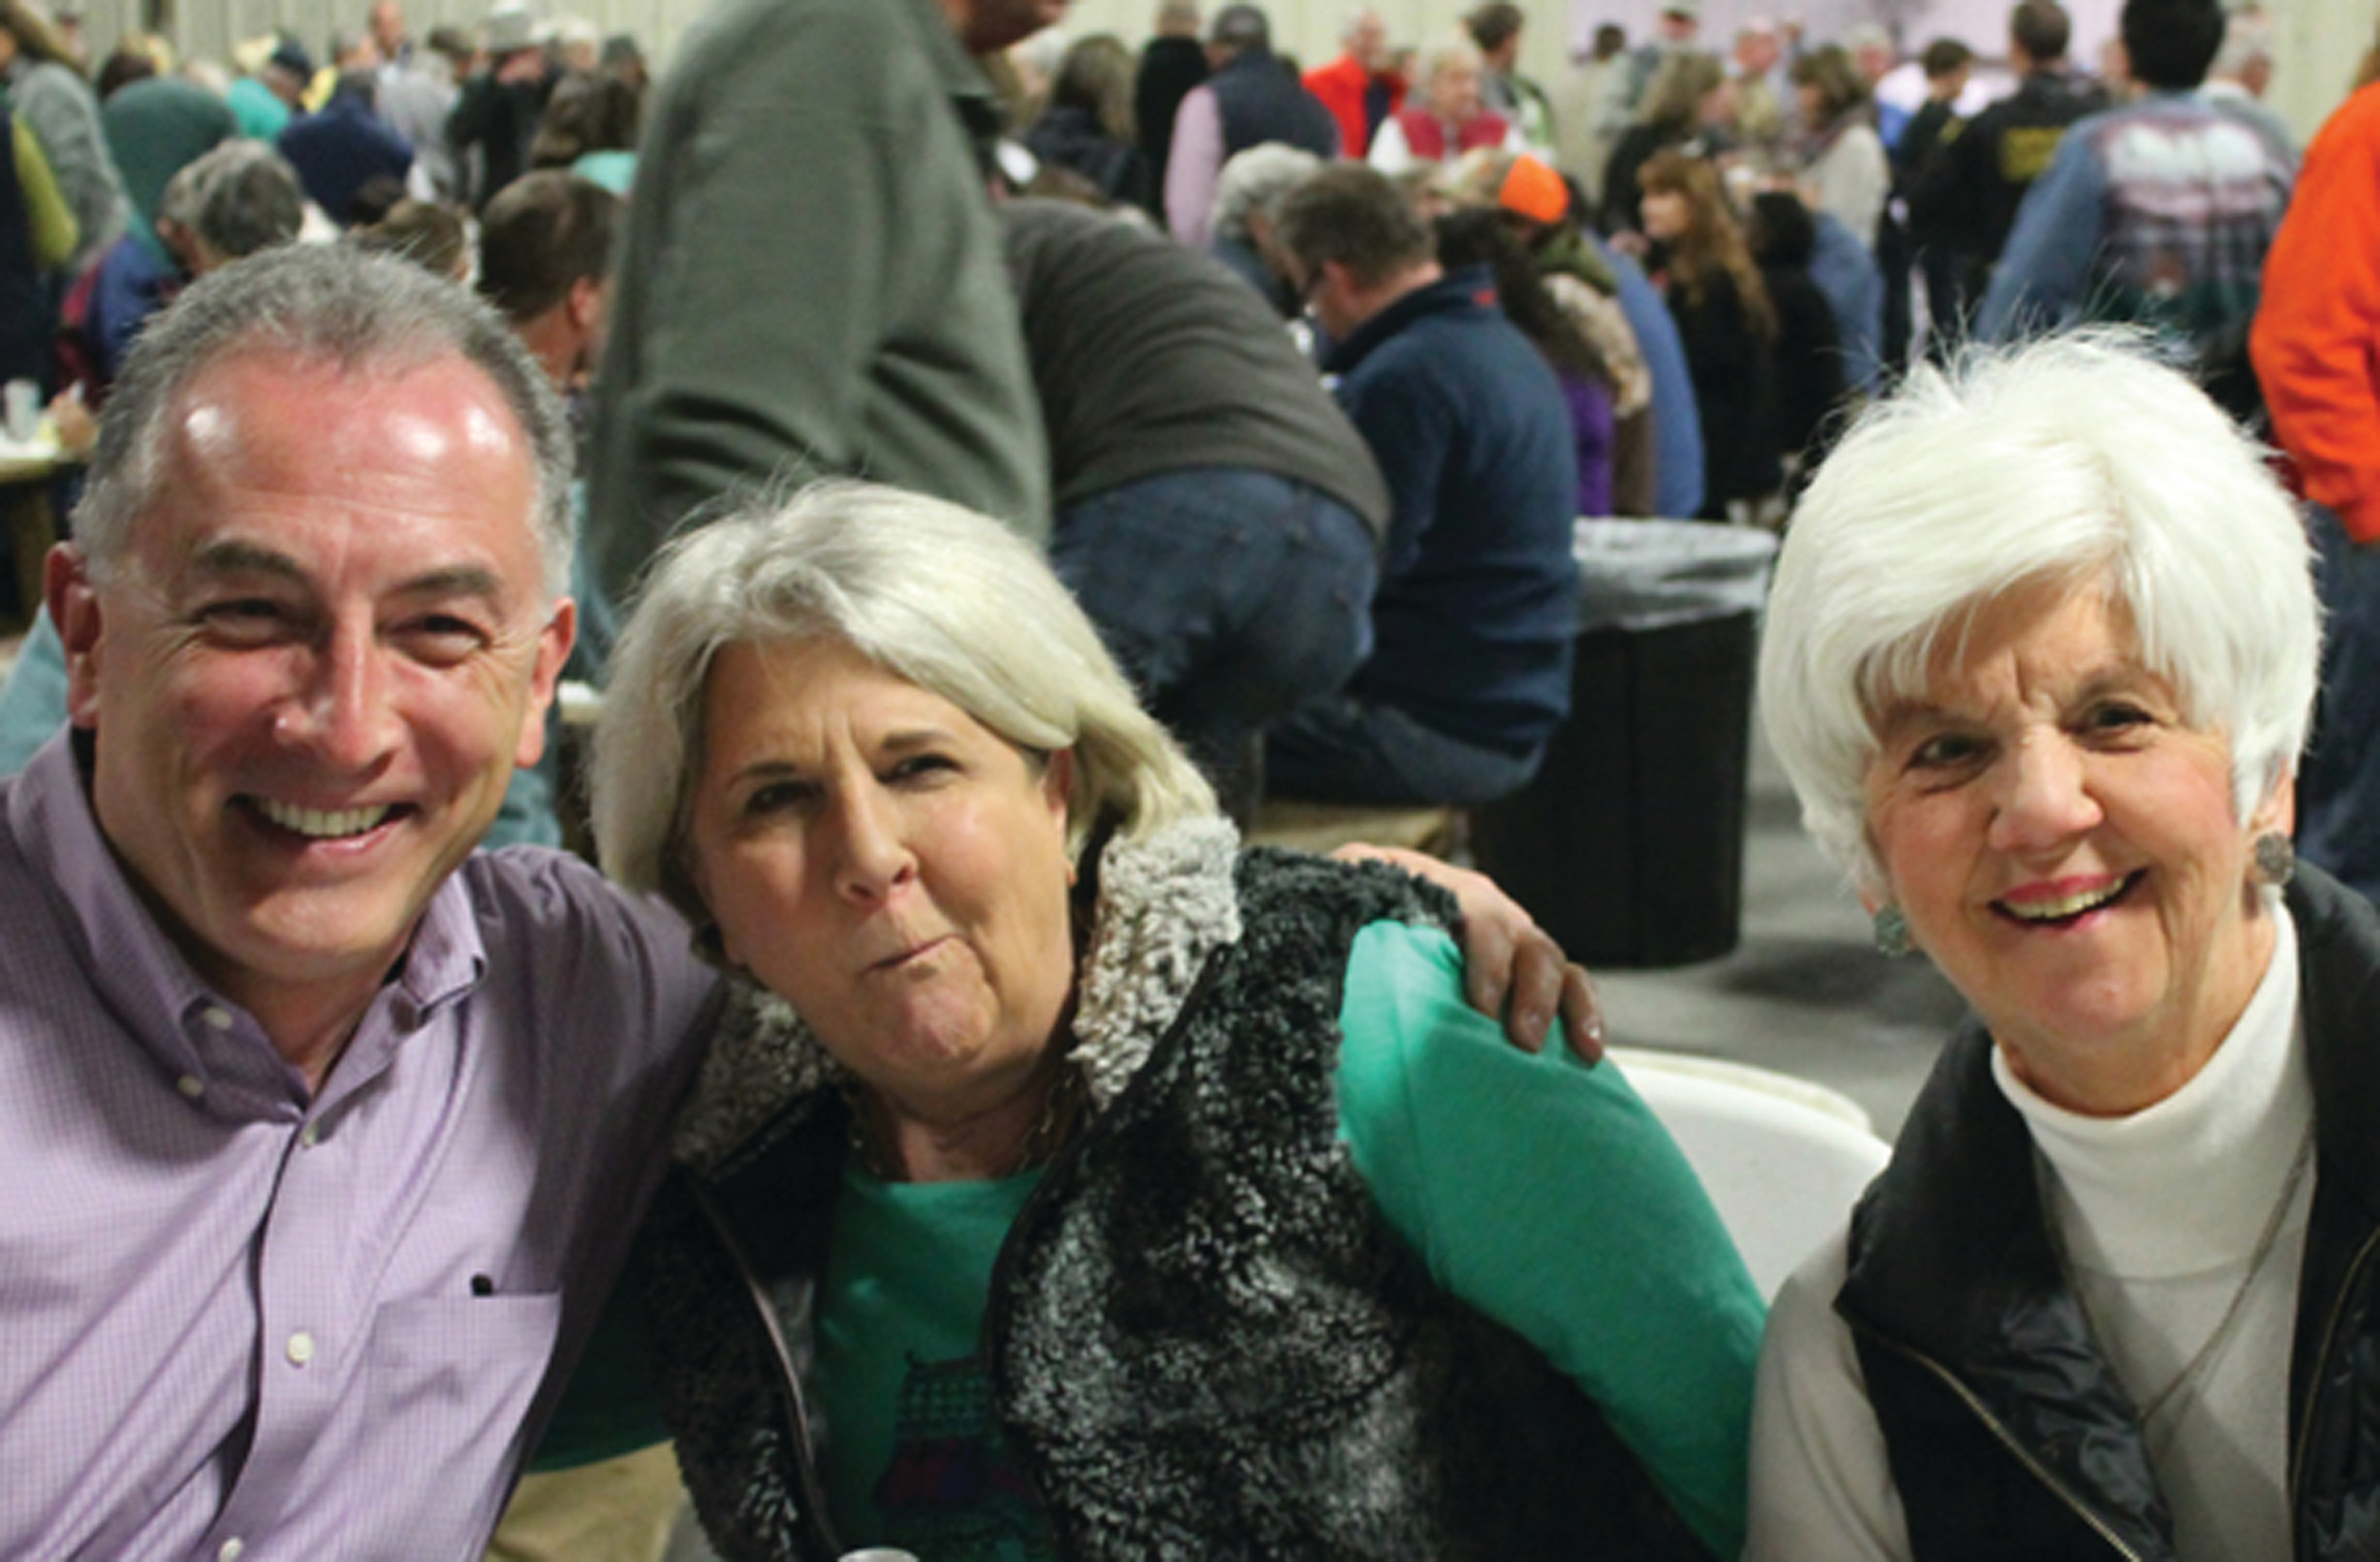 Adam Ramirez had his first taste of catfish stew, chicken bog and oysters right out of the shell at the Jan. 20 St. Matthias Oyster Roast. New York resident Ramirez had two locals, Mary Taylor, center, and Betty Coffey introducing him to various Southern cuisines.